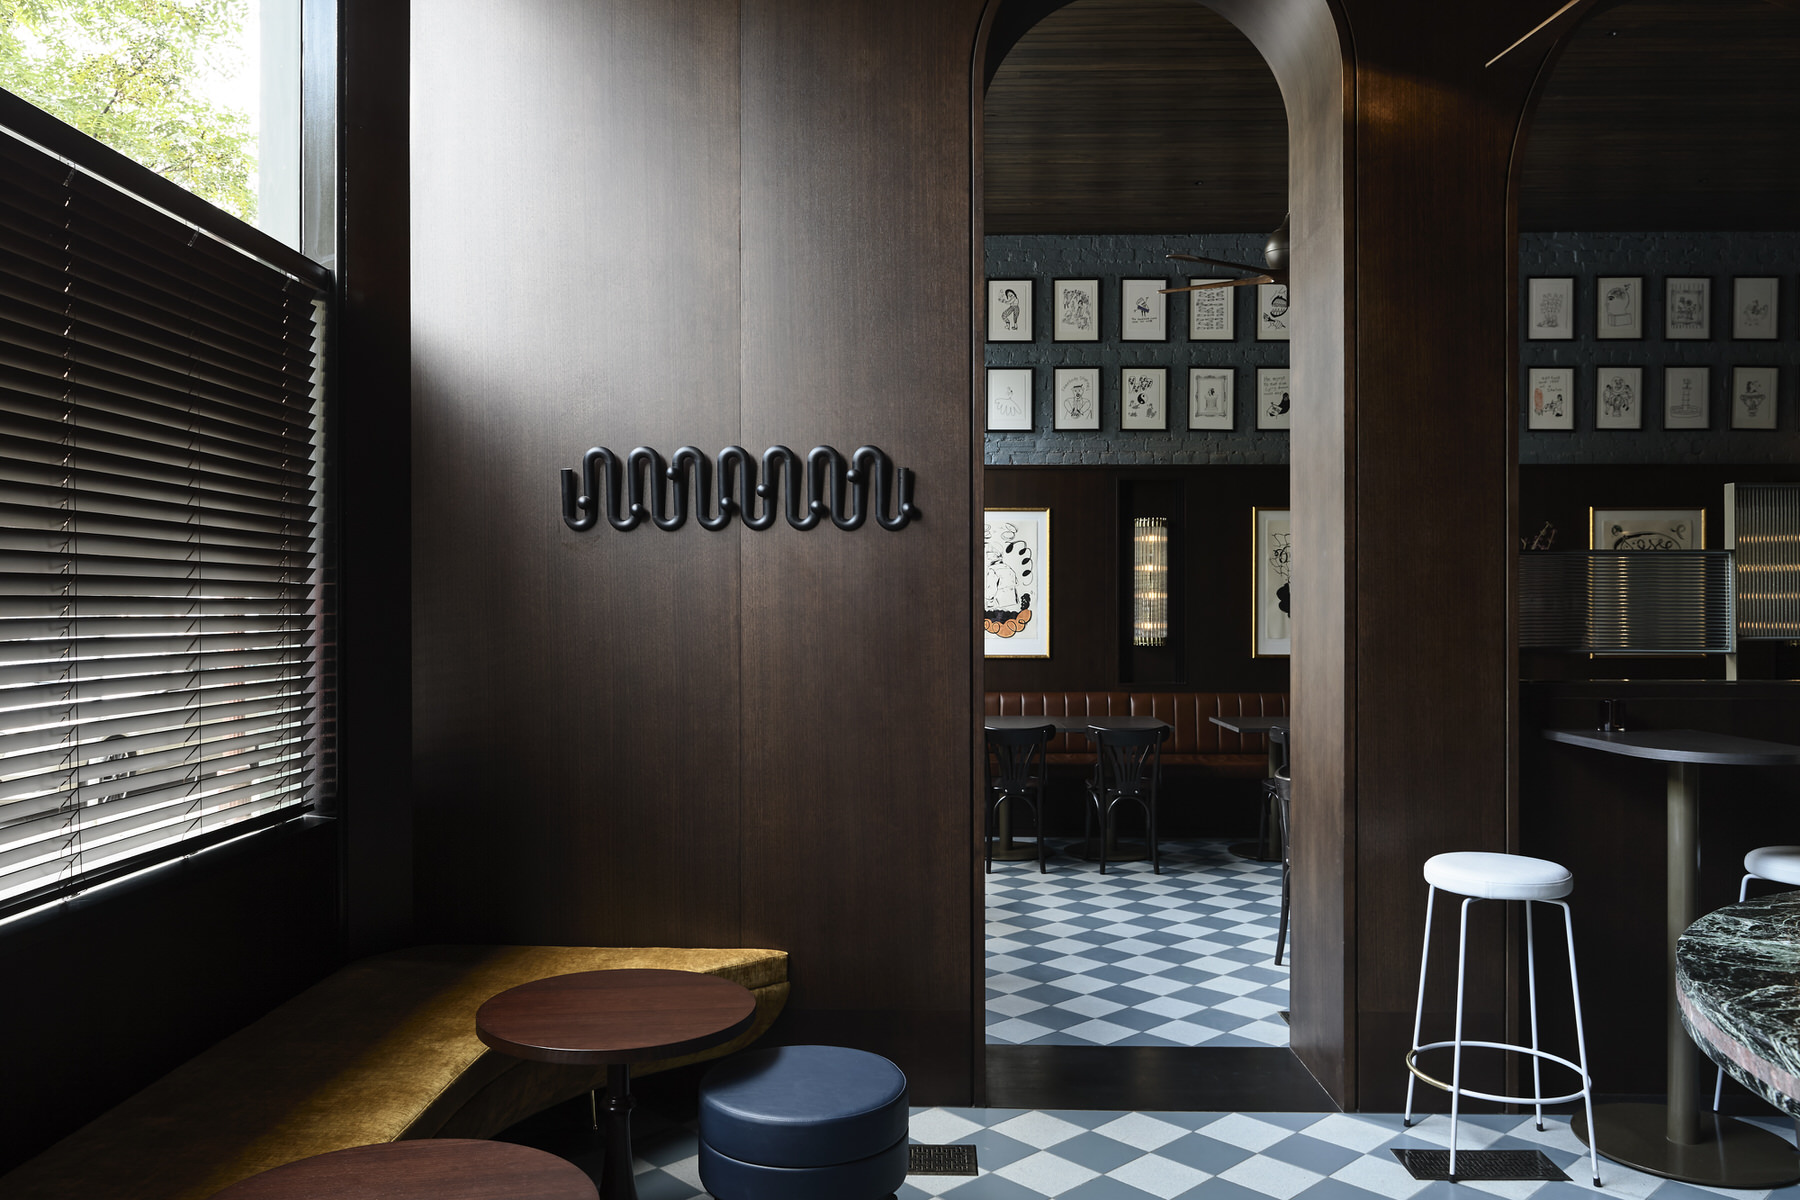 Melbourne's Poodle puts a suburban spin on the classic European Bistro